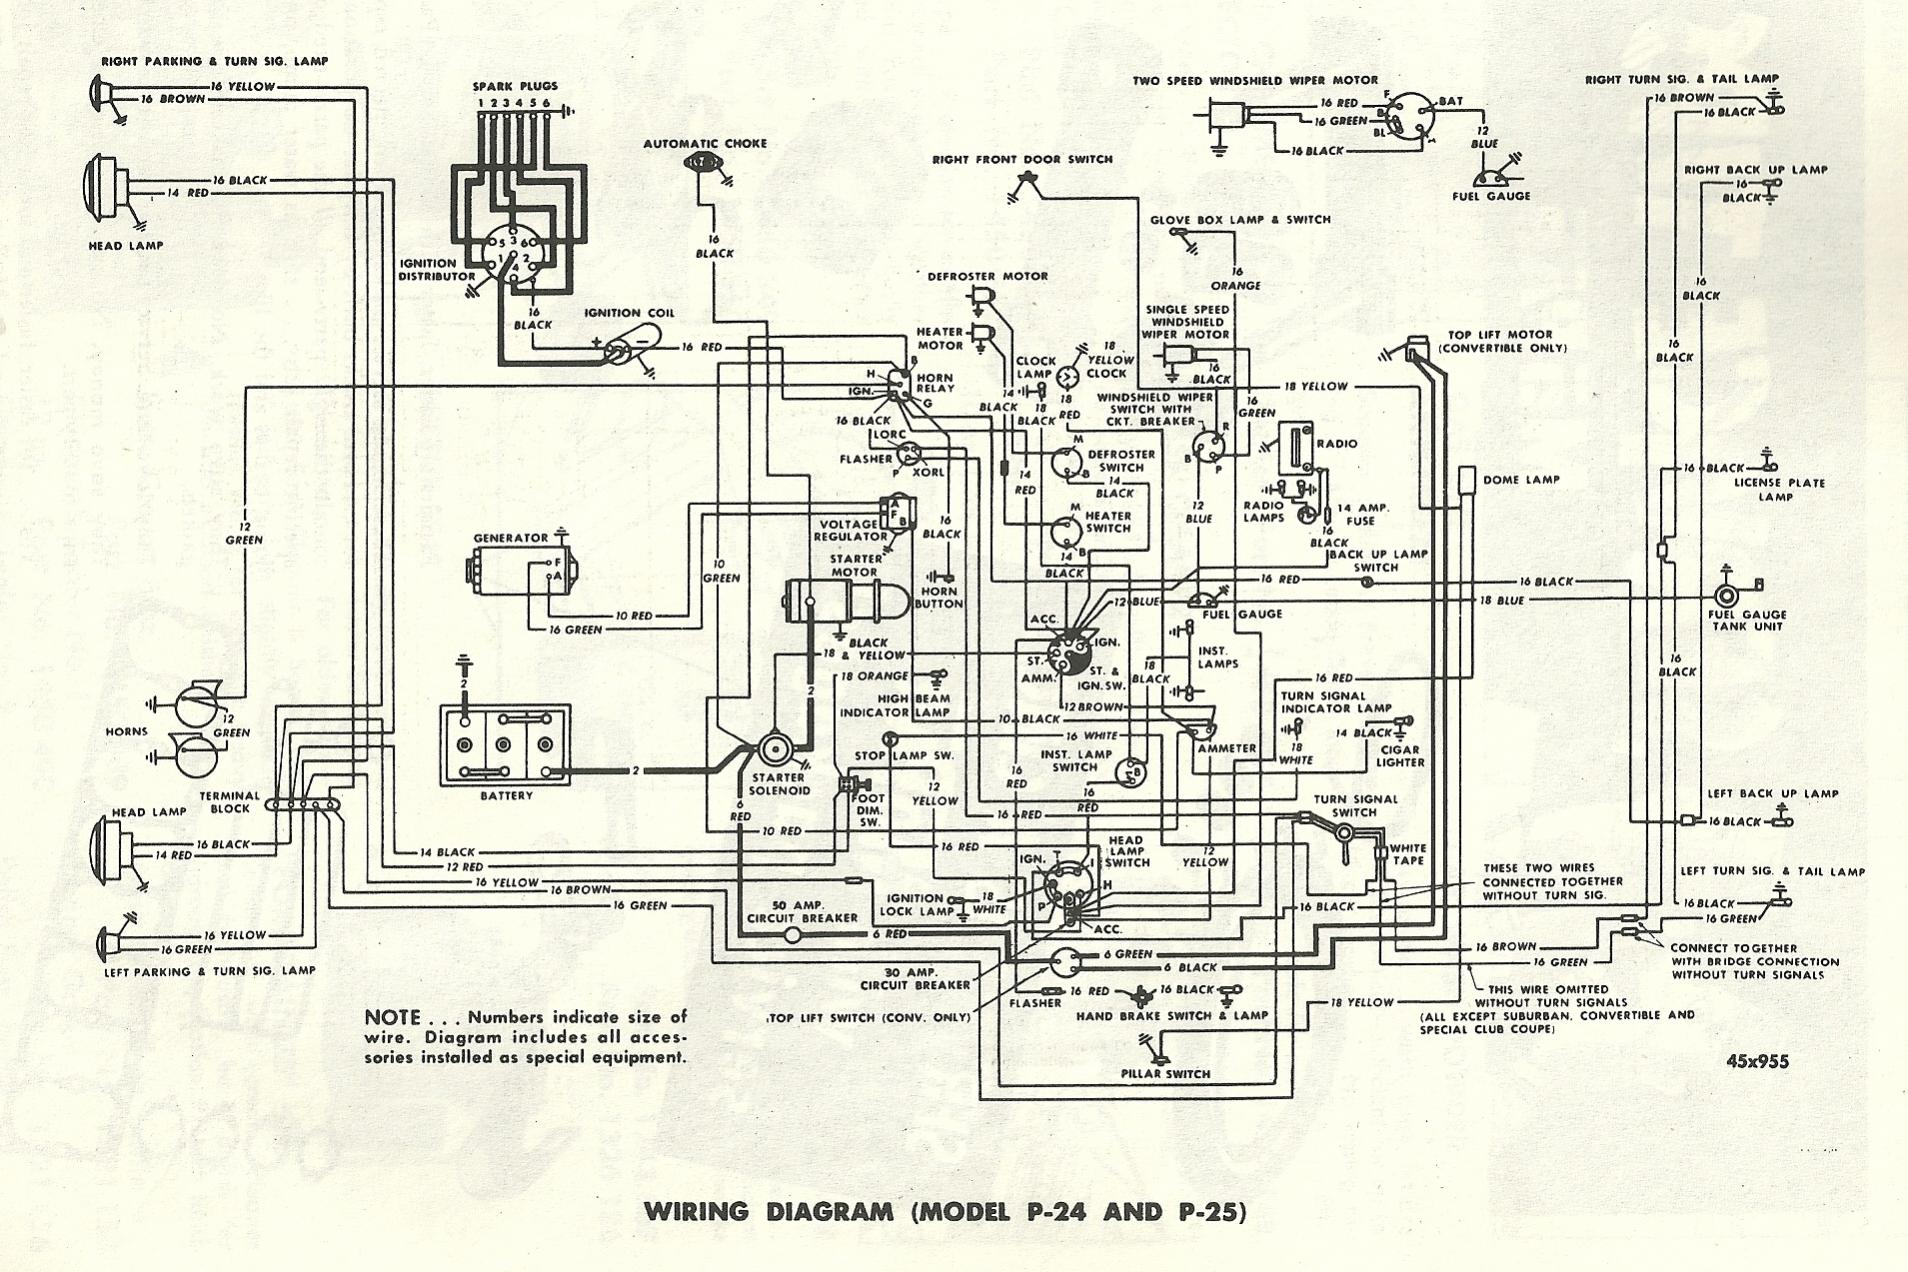 1949 packard wiring diagram th 0765  1953 plymouth wiring diagram schematic wiring diagram  1953 plymouth wiring diagram schematic